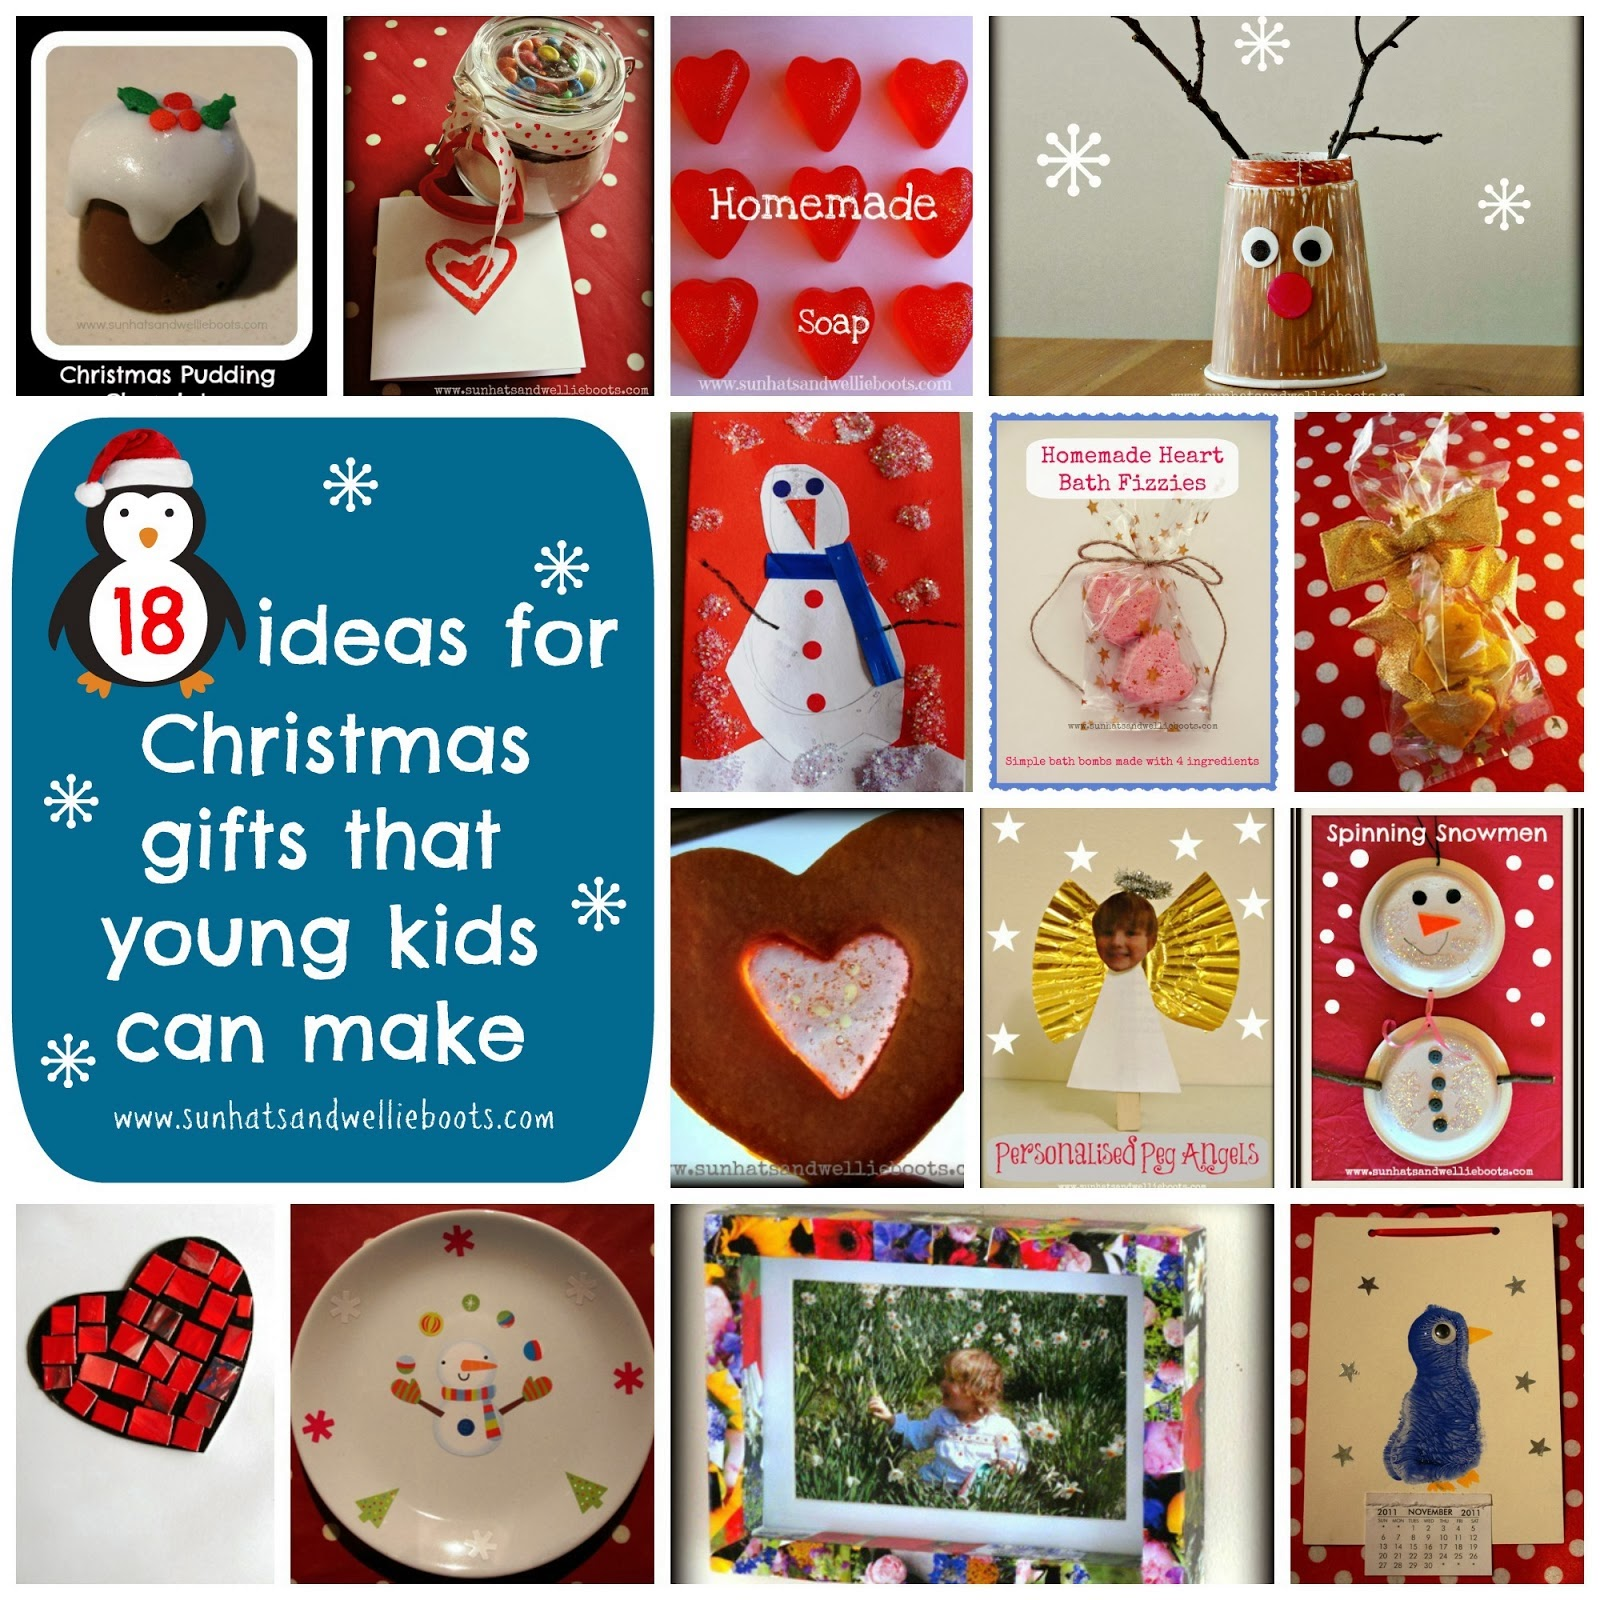 http://www.sunhatsandwellieboots.com/2013/11/18-homemade-christmas-gifts-that-young.html